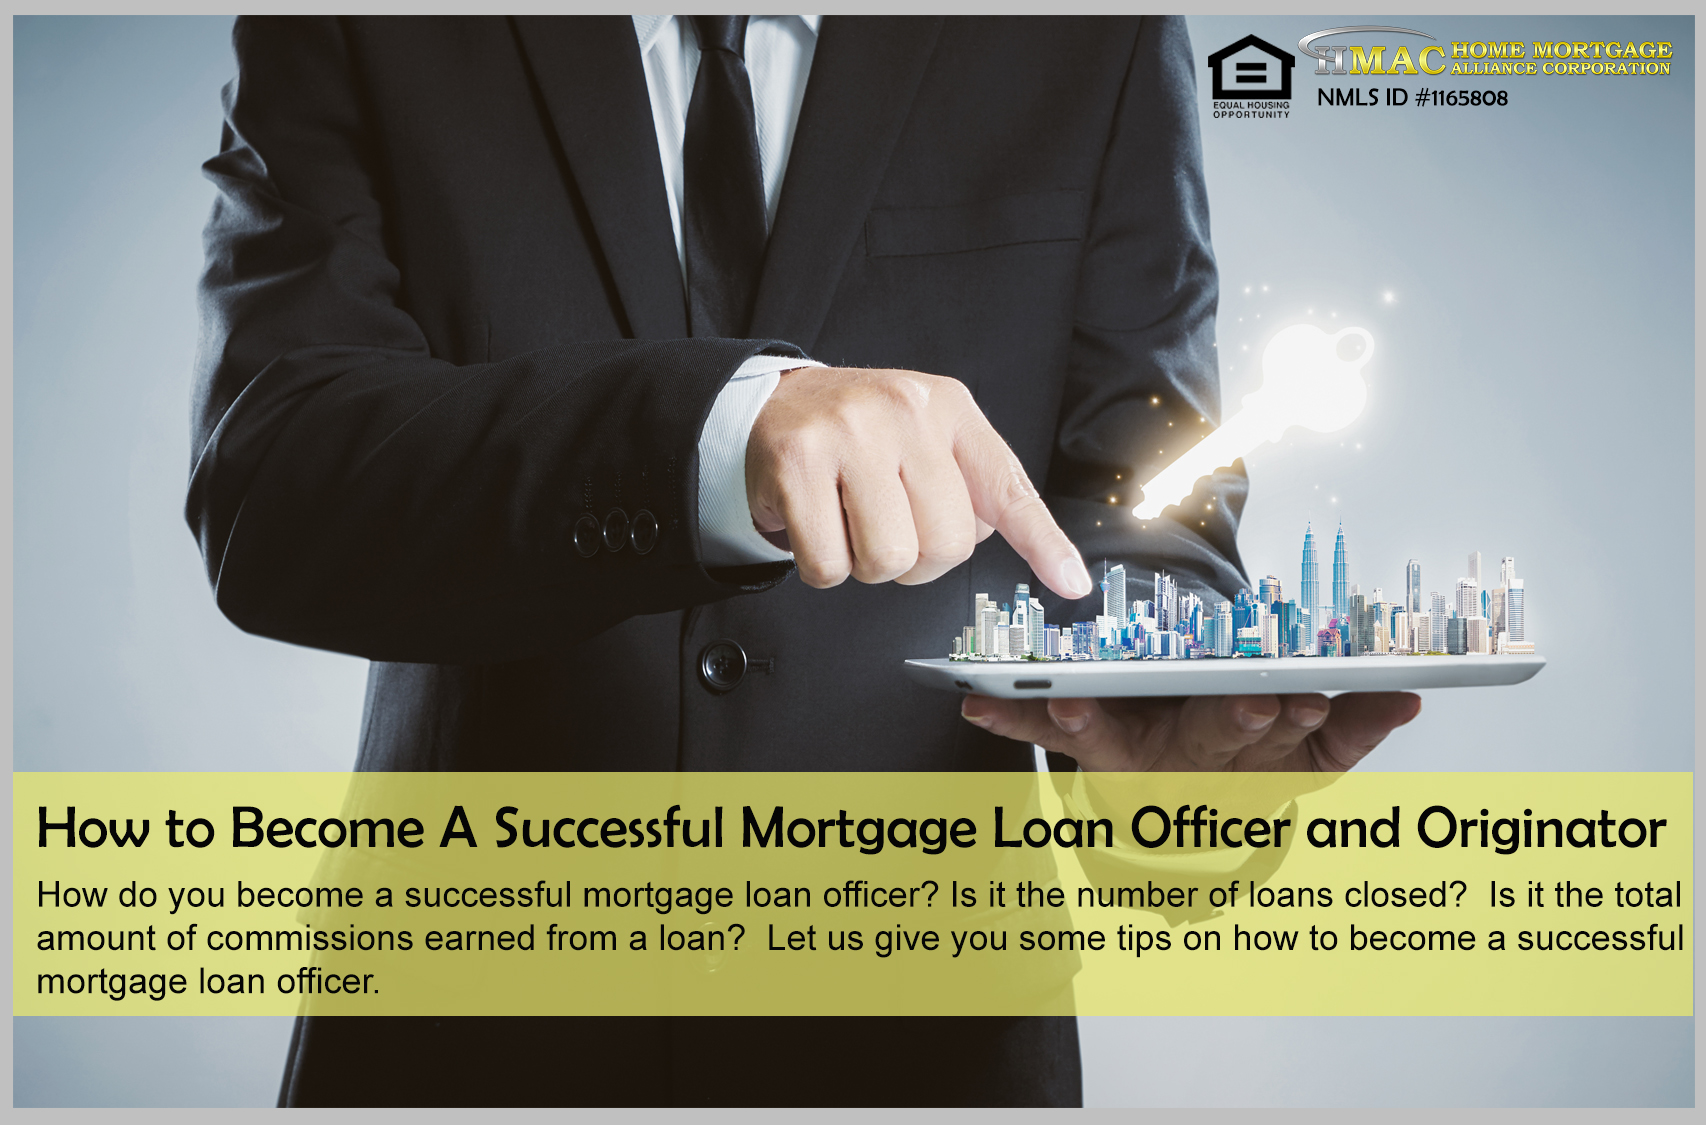 How to become a successful mortgage loan officer and originator